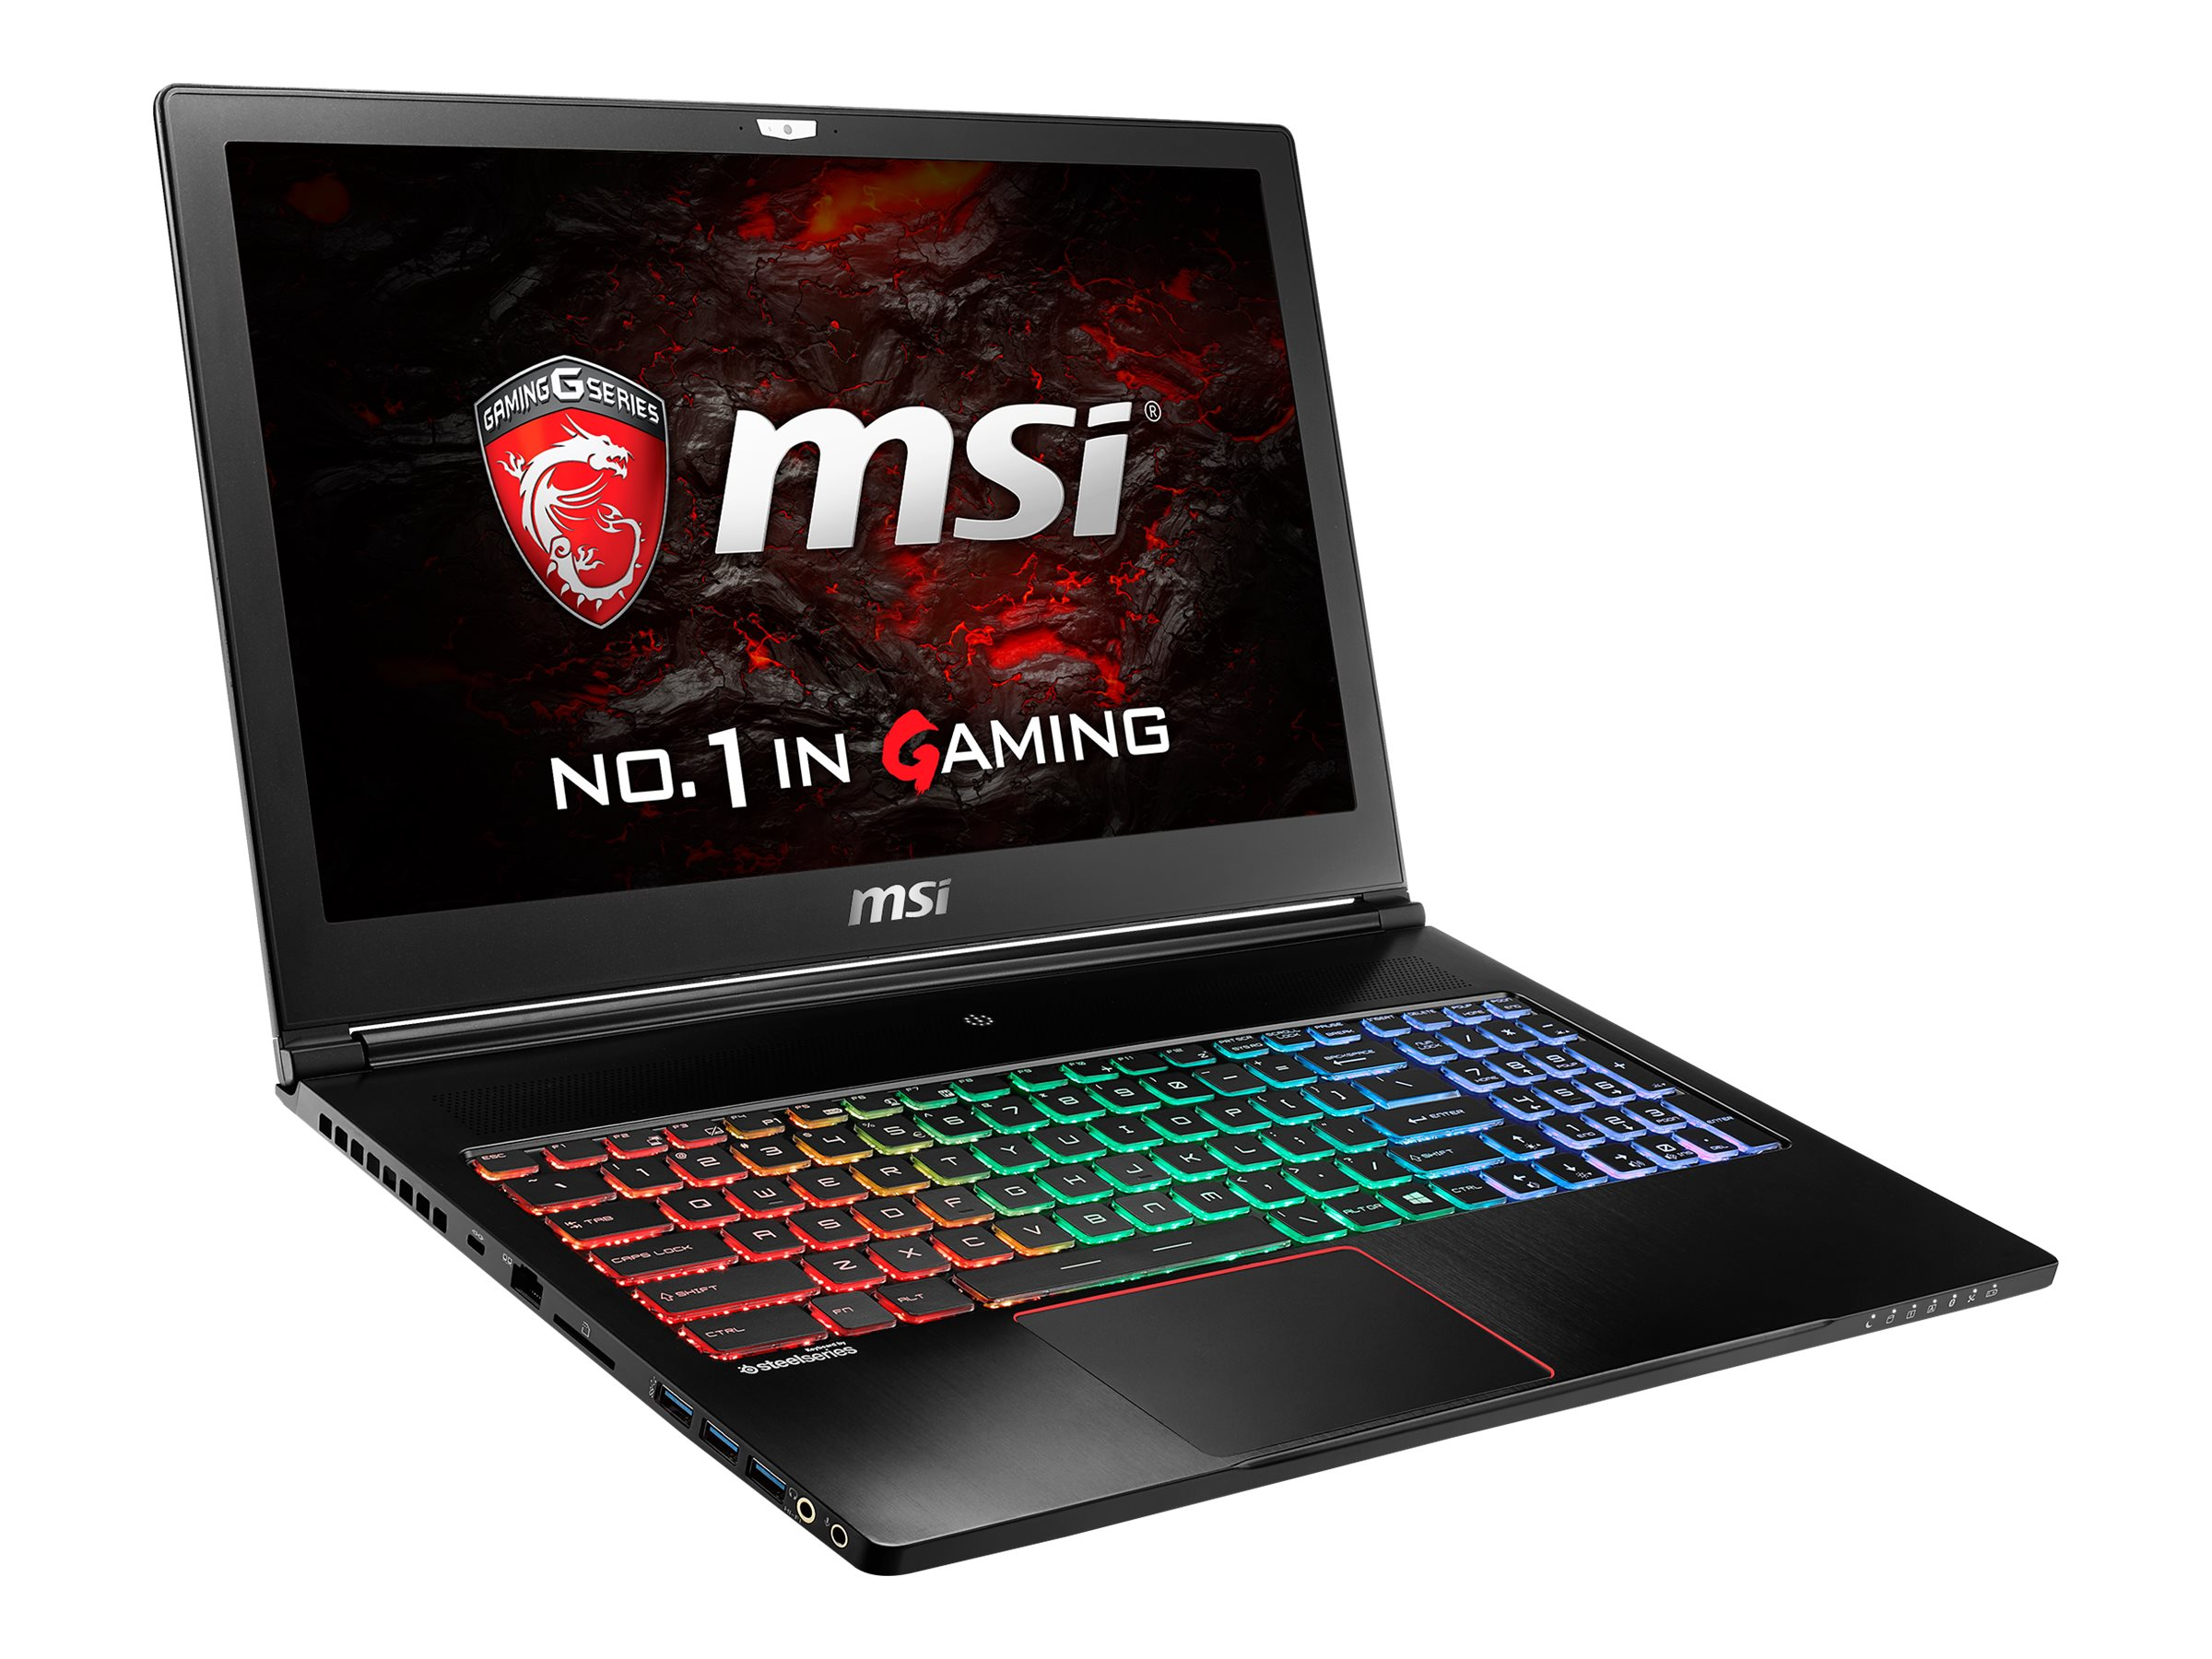 MSI Computer GS63VR STEALTH PRO-034 Image 4